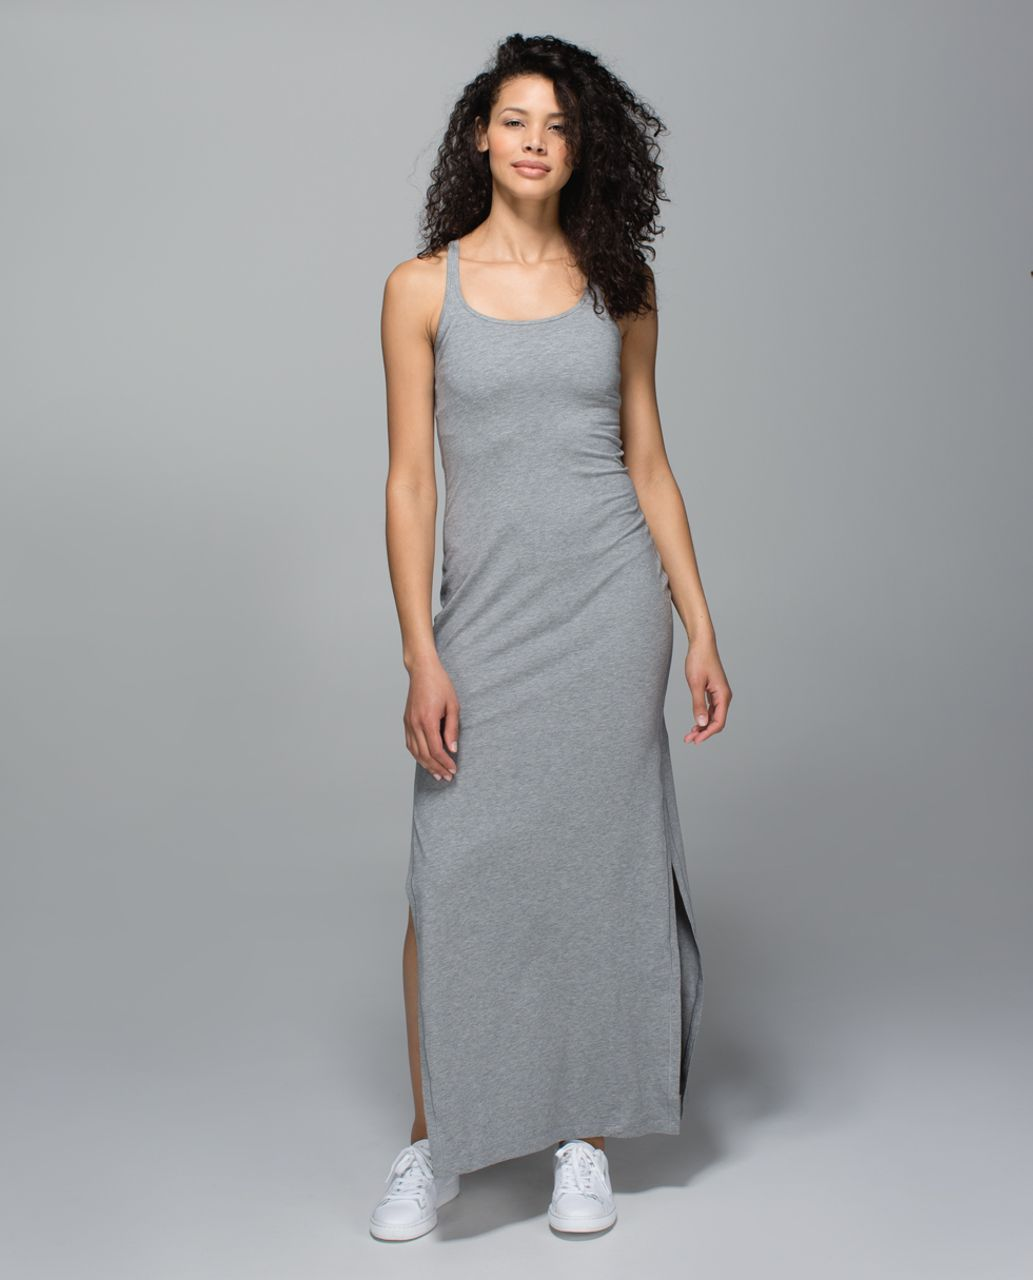 ec275d534de Lululemon Refresh Maxi Dress - Heathered Medium Grey - lulu fanatics